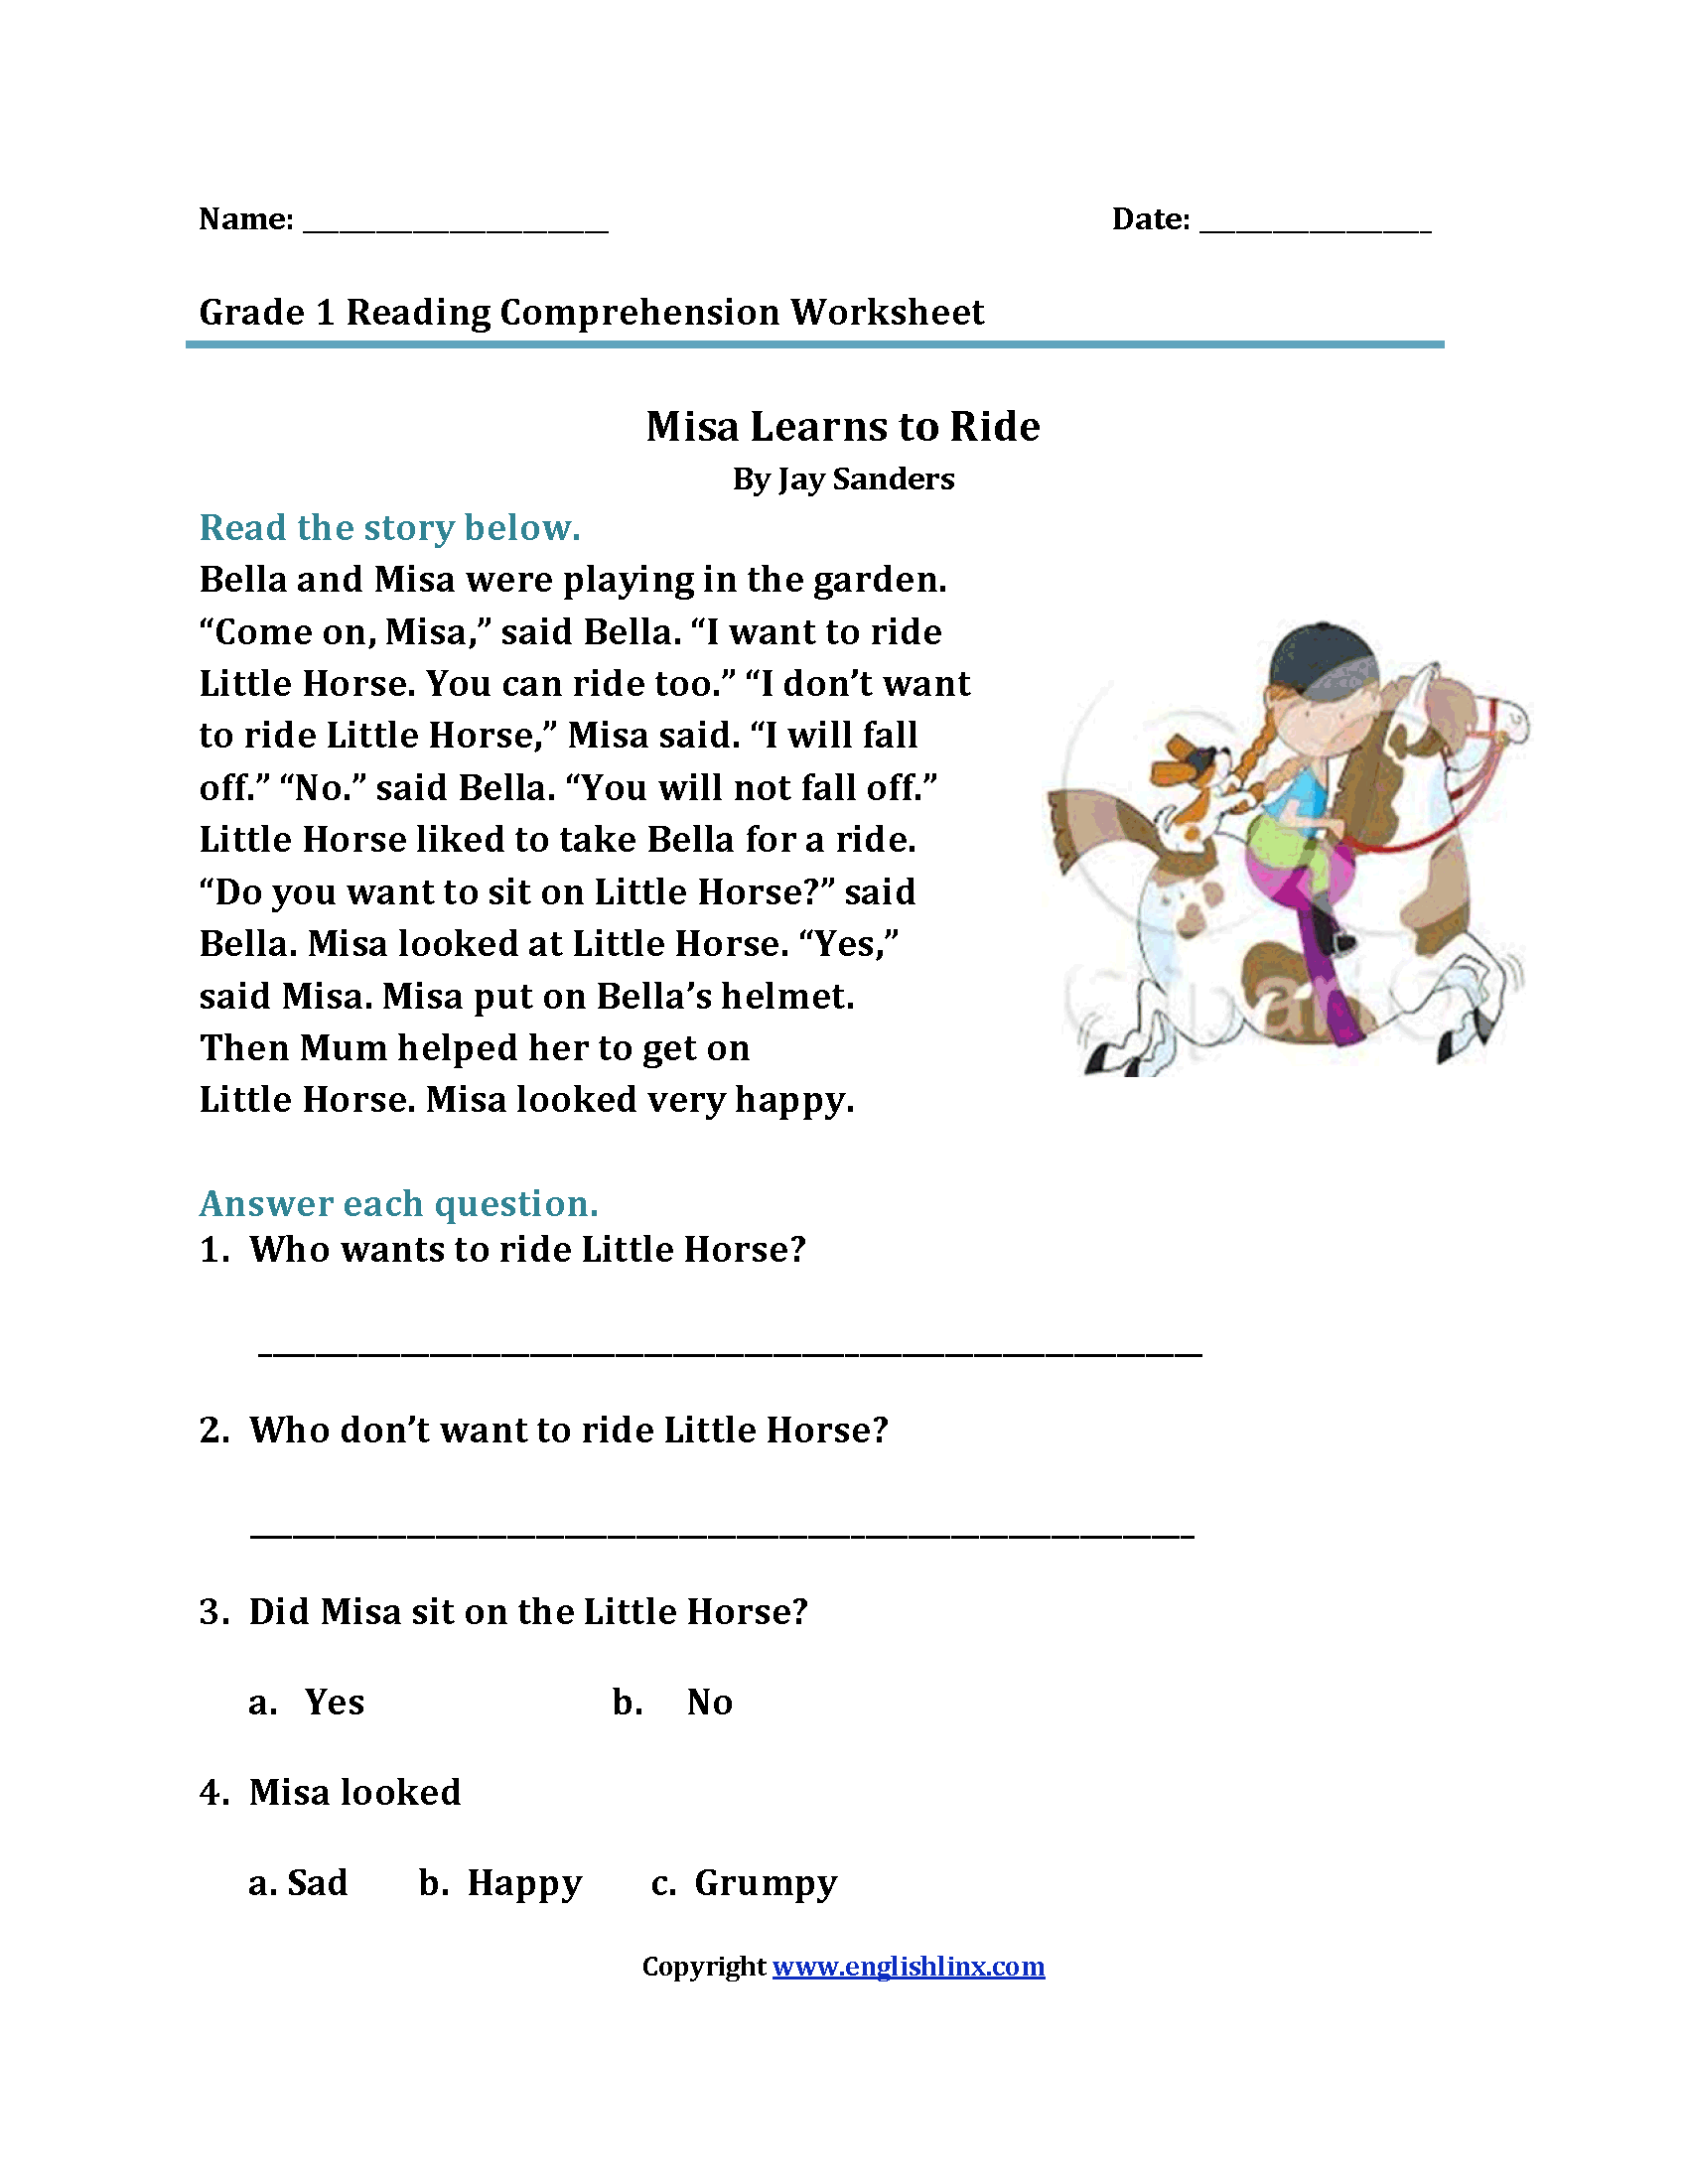 Misa Learns To Ride First Grade Reading Worksheets